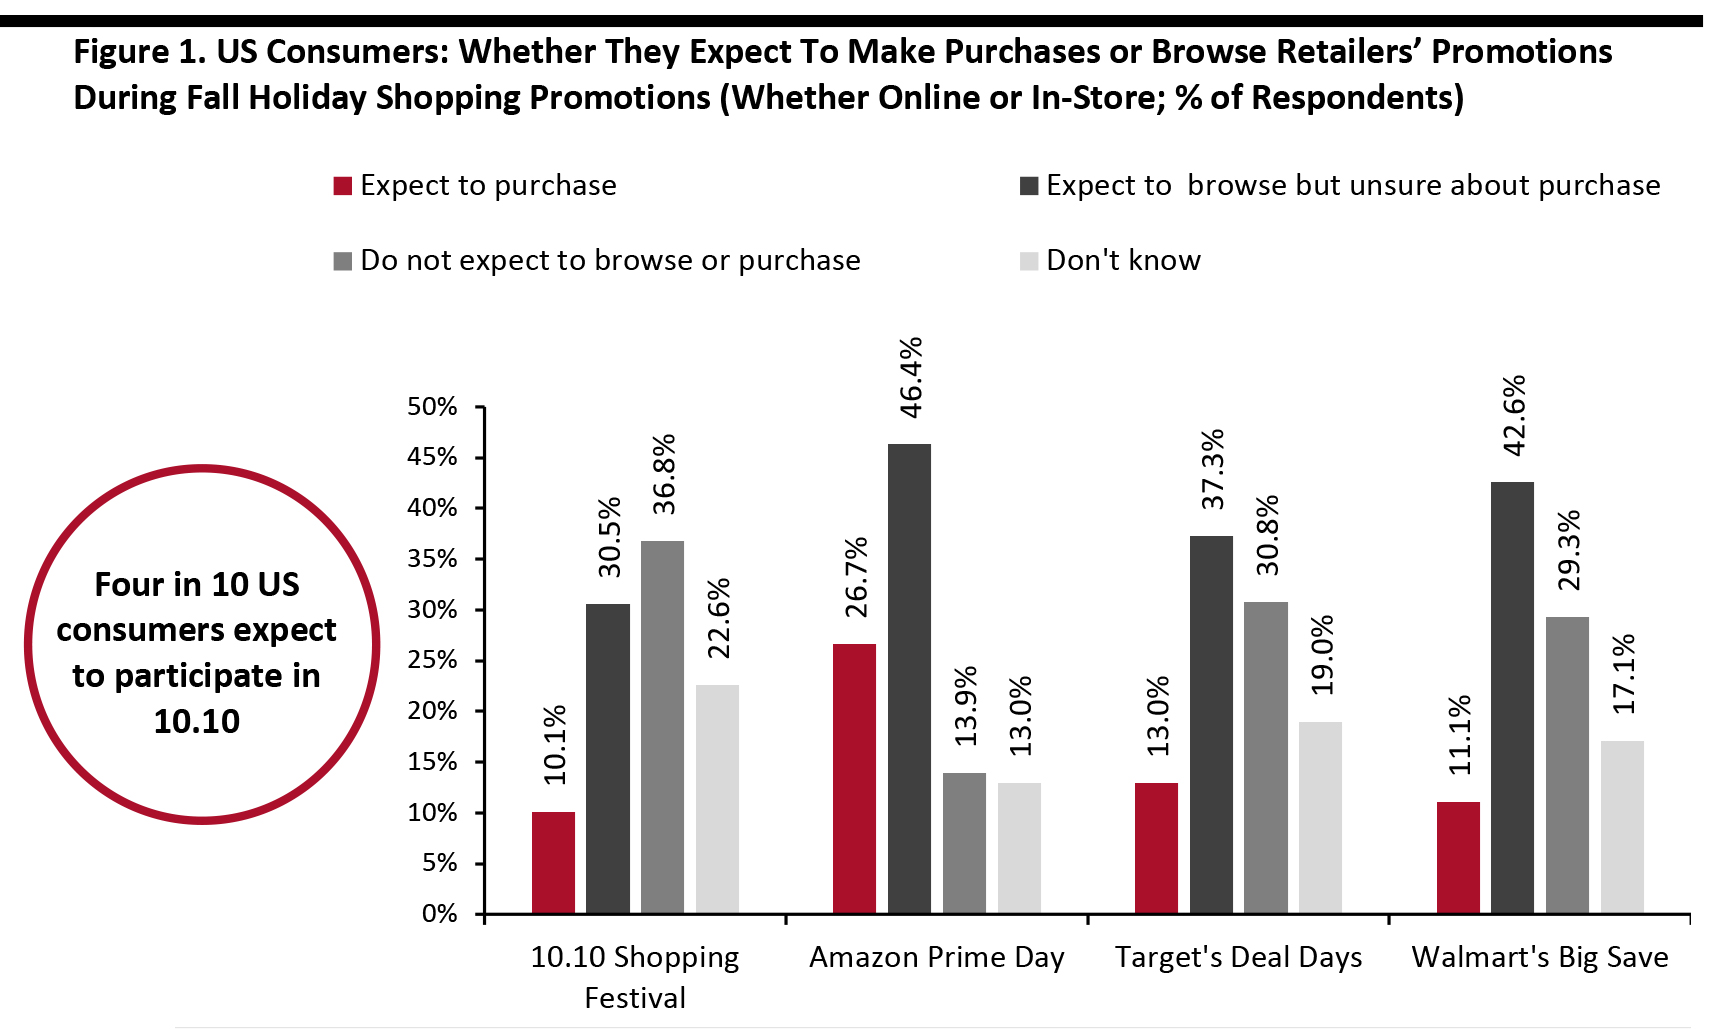 Figure 1. US Consumers: Whether They Expect To Make Purchases or Browse Retailers' Promotions During Fall Holiday Shopping Promotions (Whether Online or In-Store; % of Respondents)